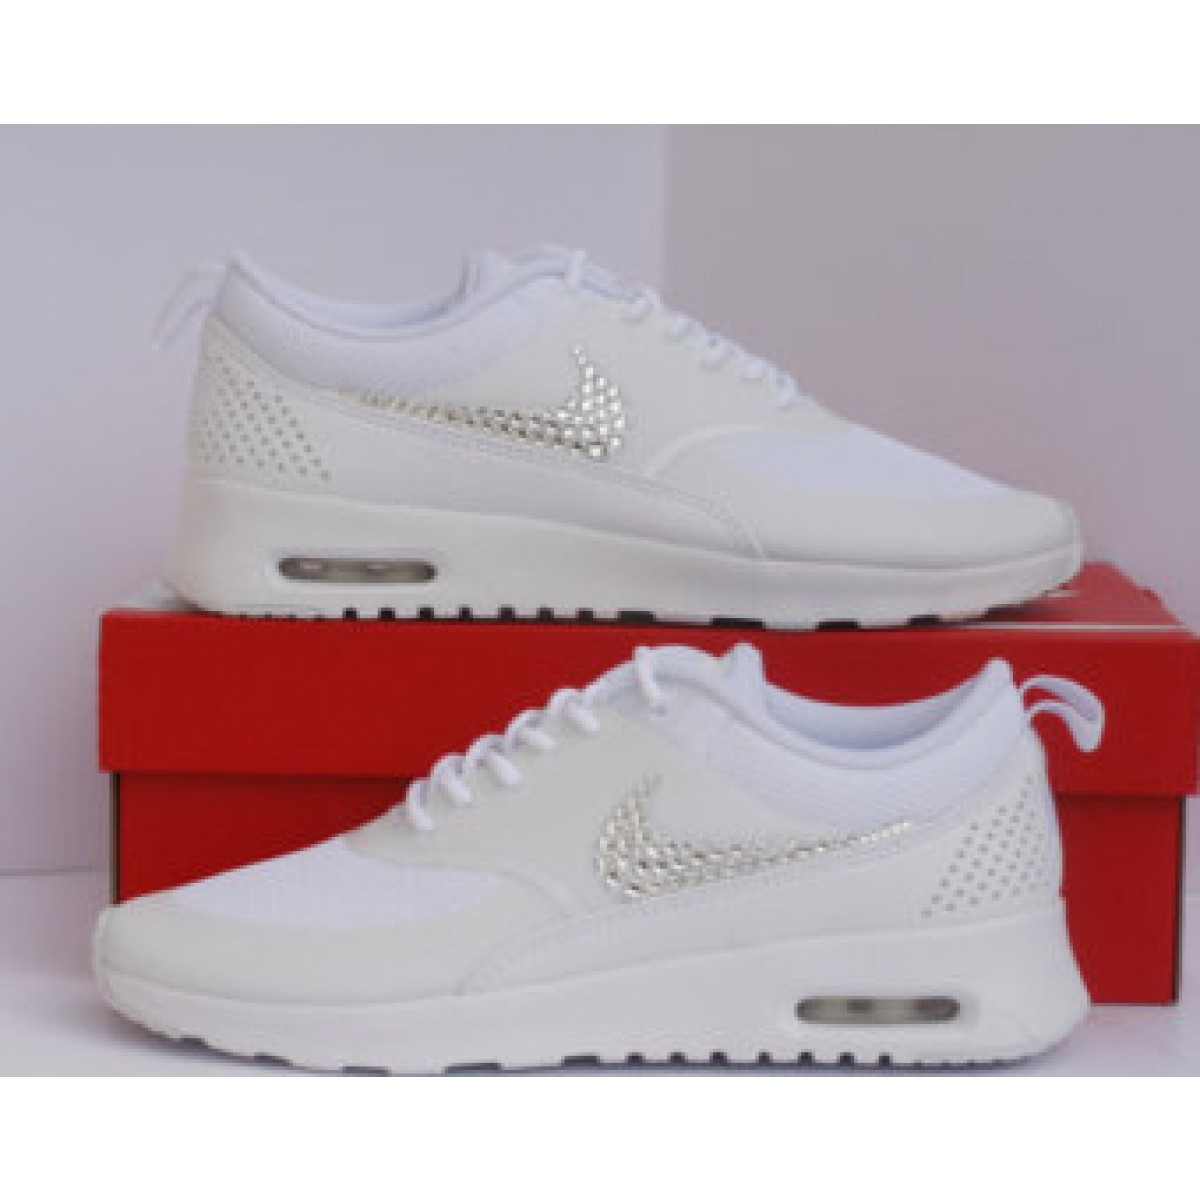 new high quality new arrival popular stores France Pas Cher air max thea femme personnalisable Vente en ligne ...